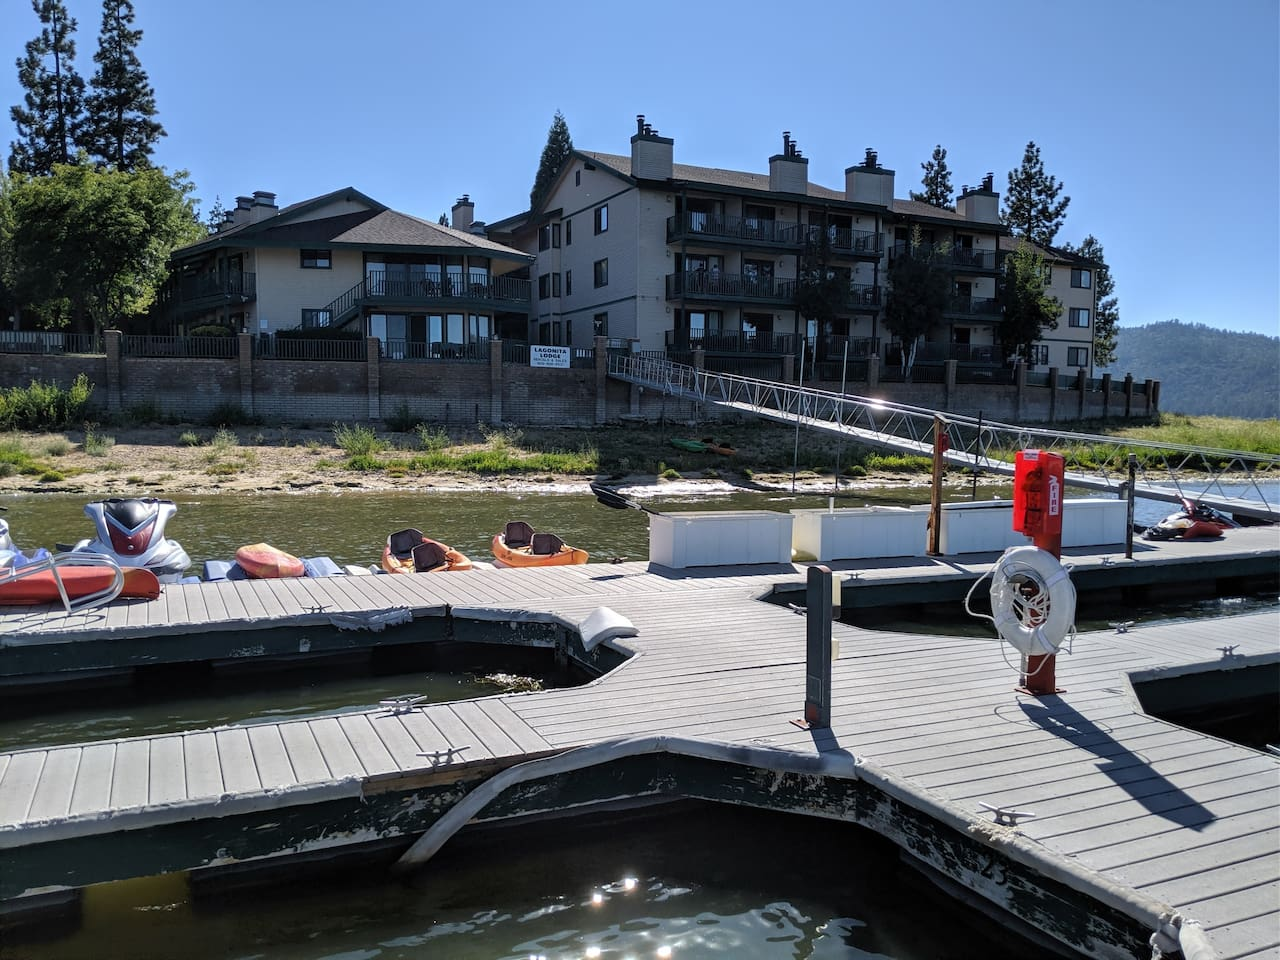 View of lodge showing boat docks with kayaks for rent and places to fish